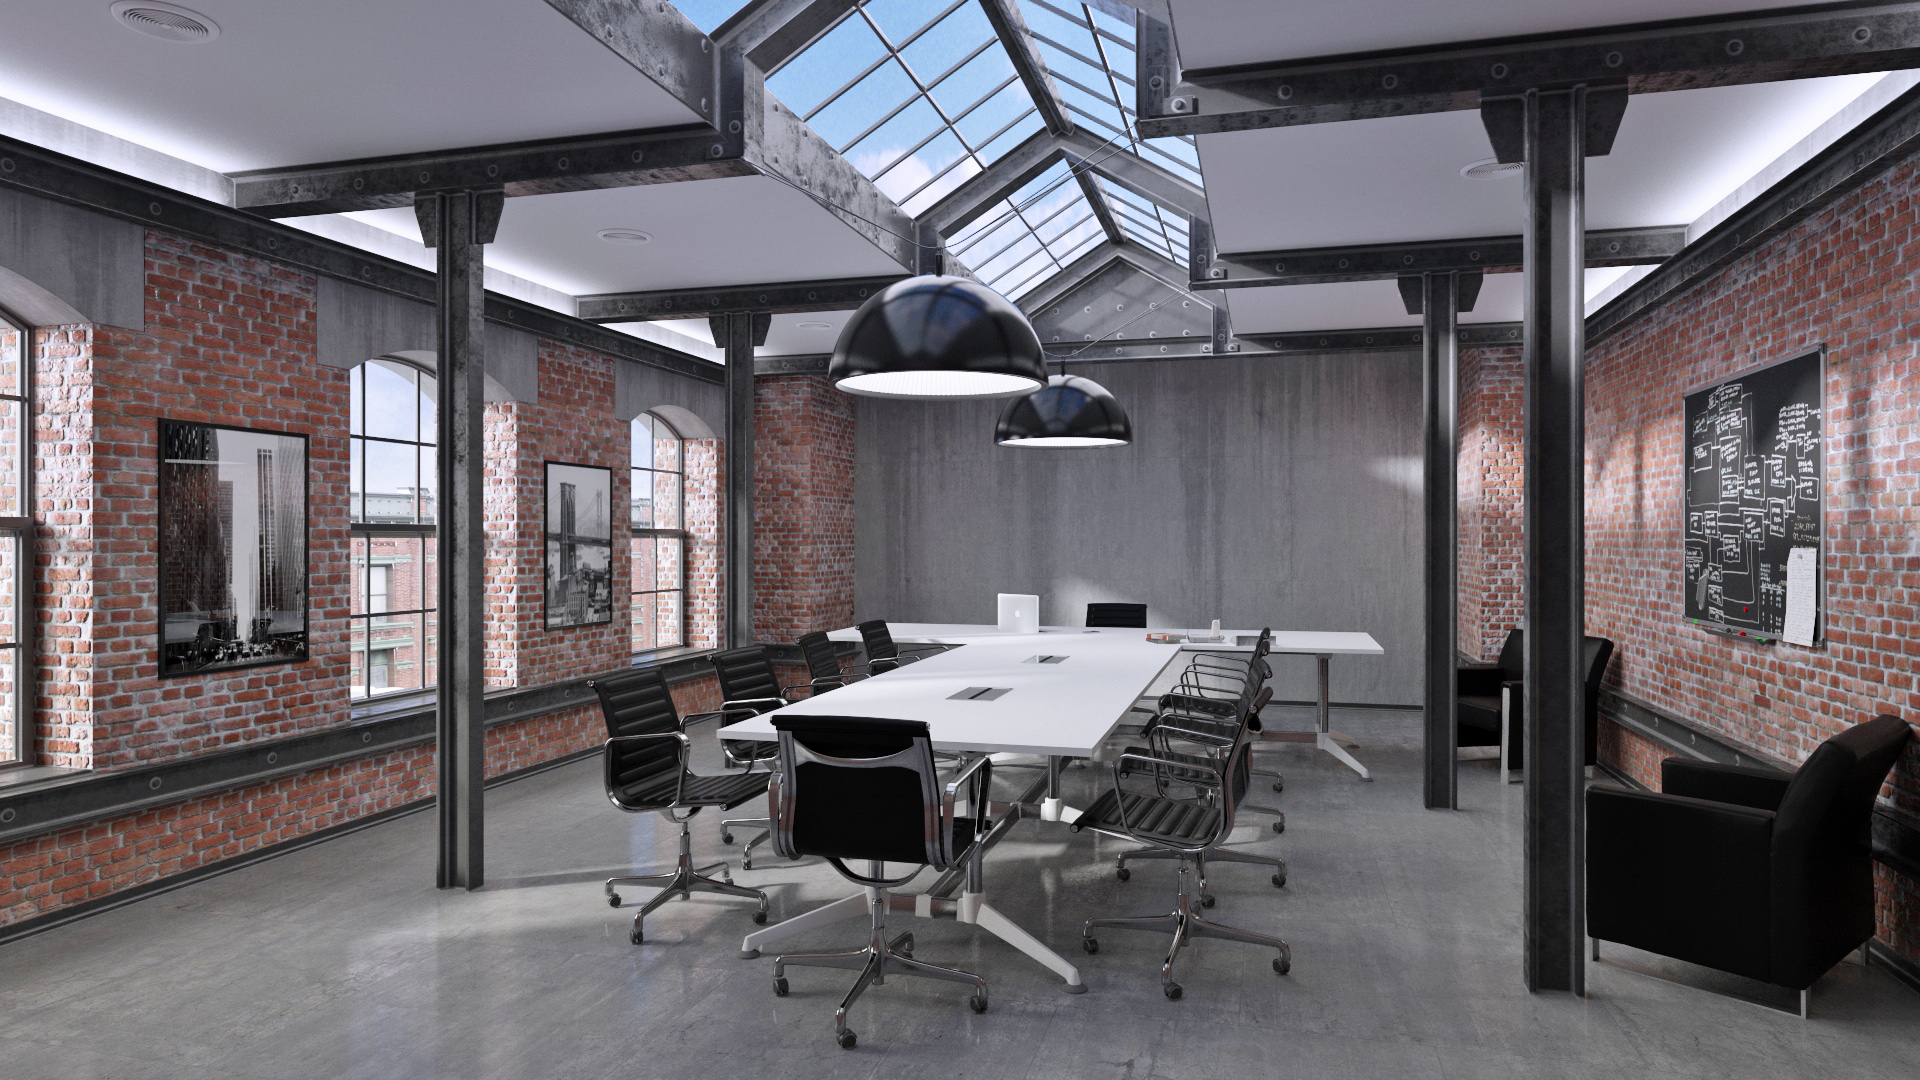 Industrial and Modern Boardroom Setting with Brick Walls, and a Modern White Office Boardroom Table